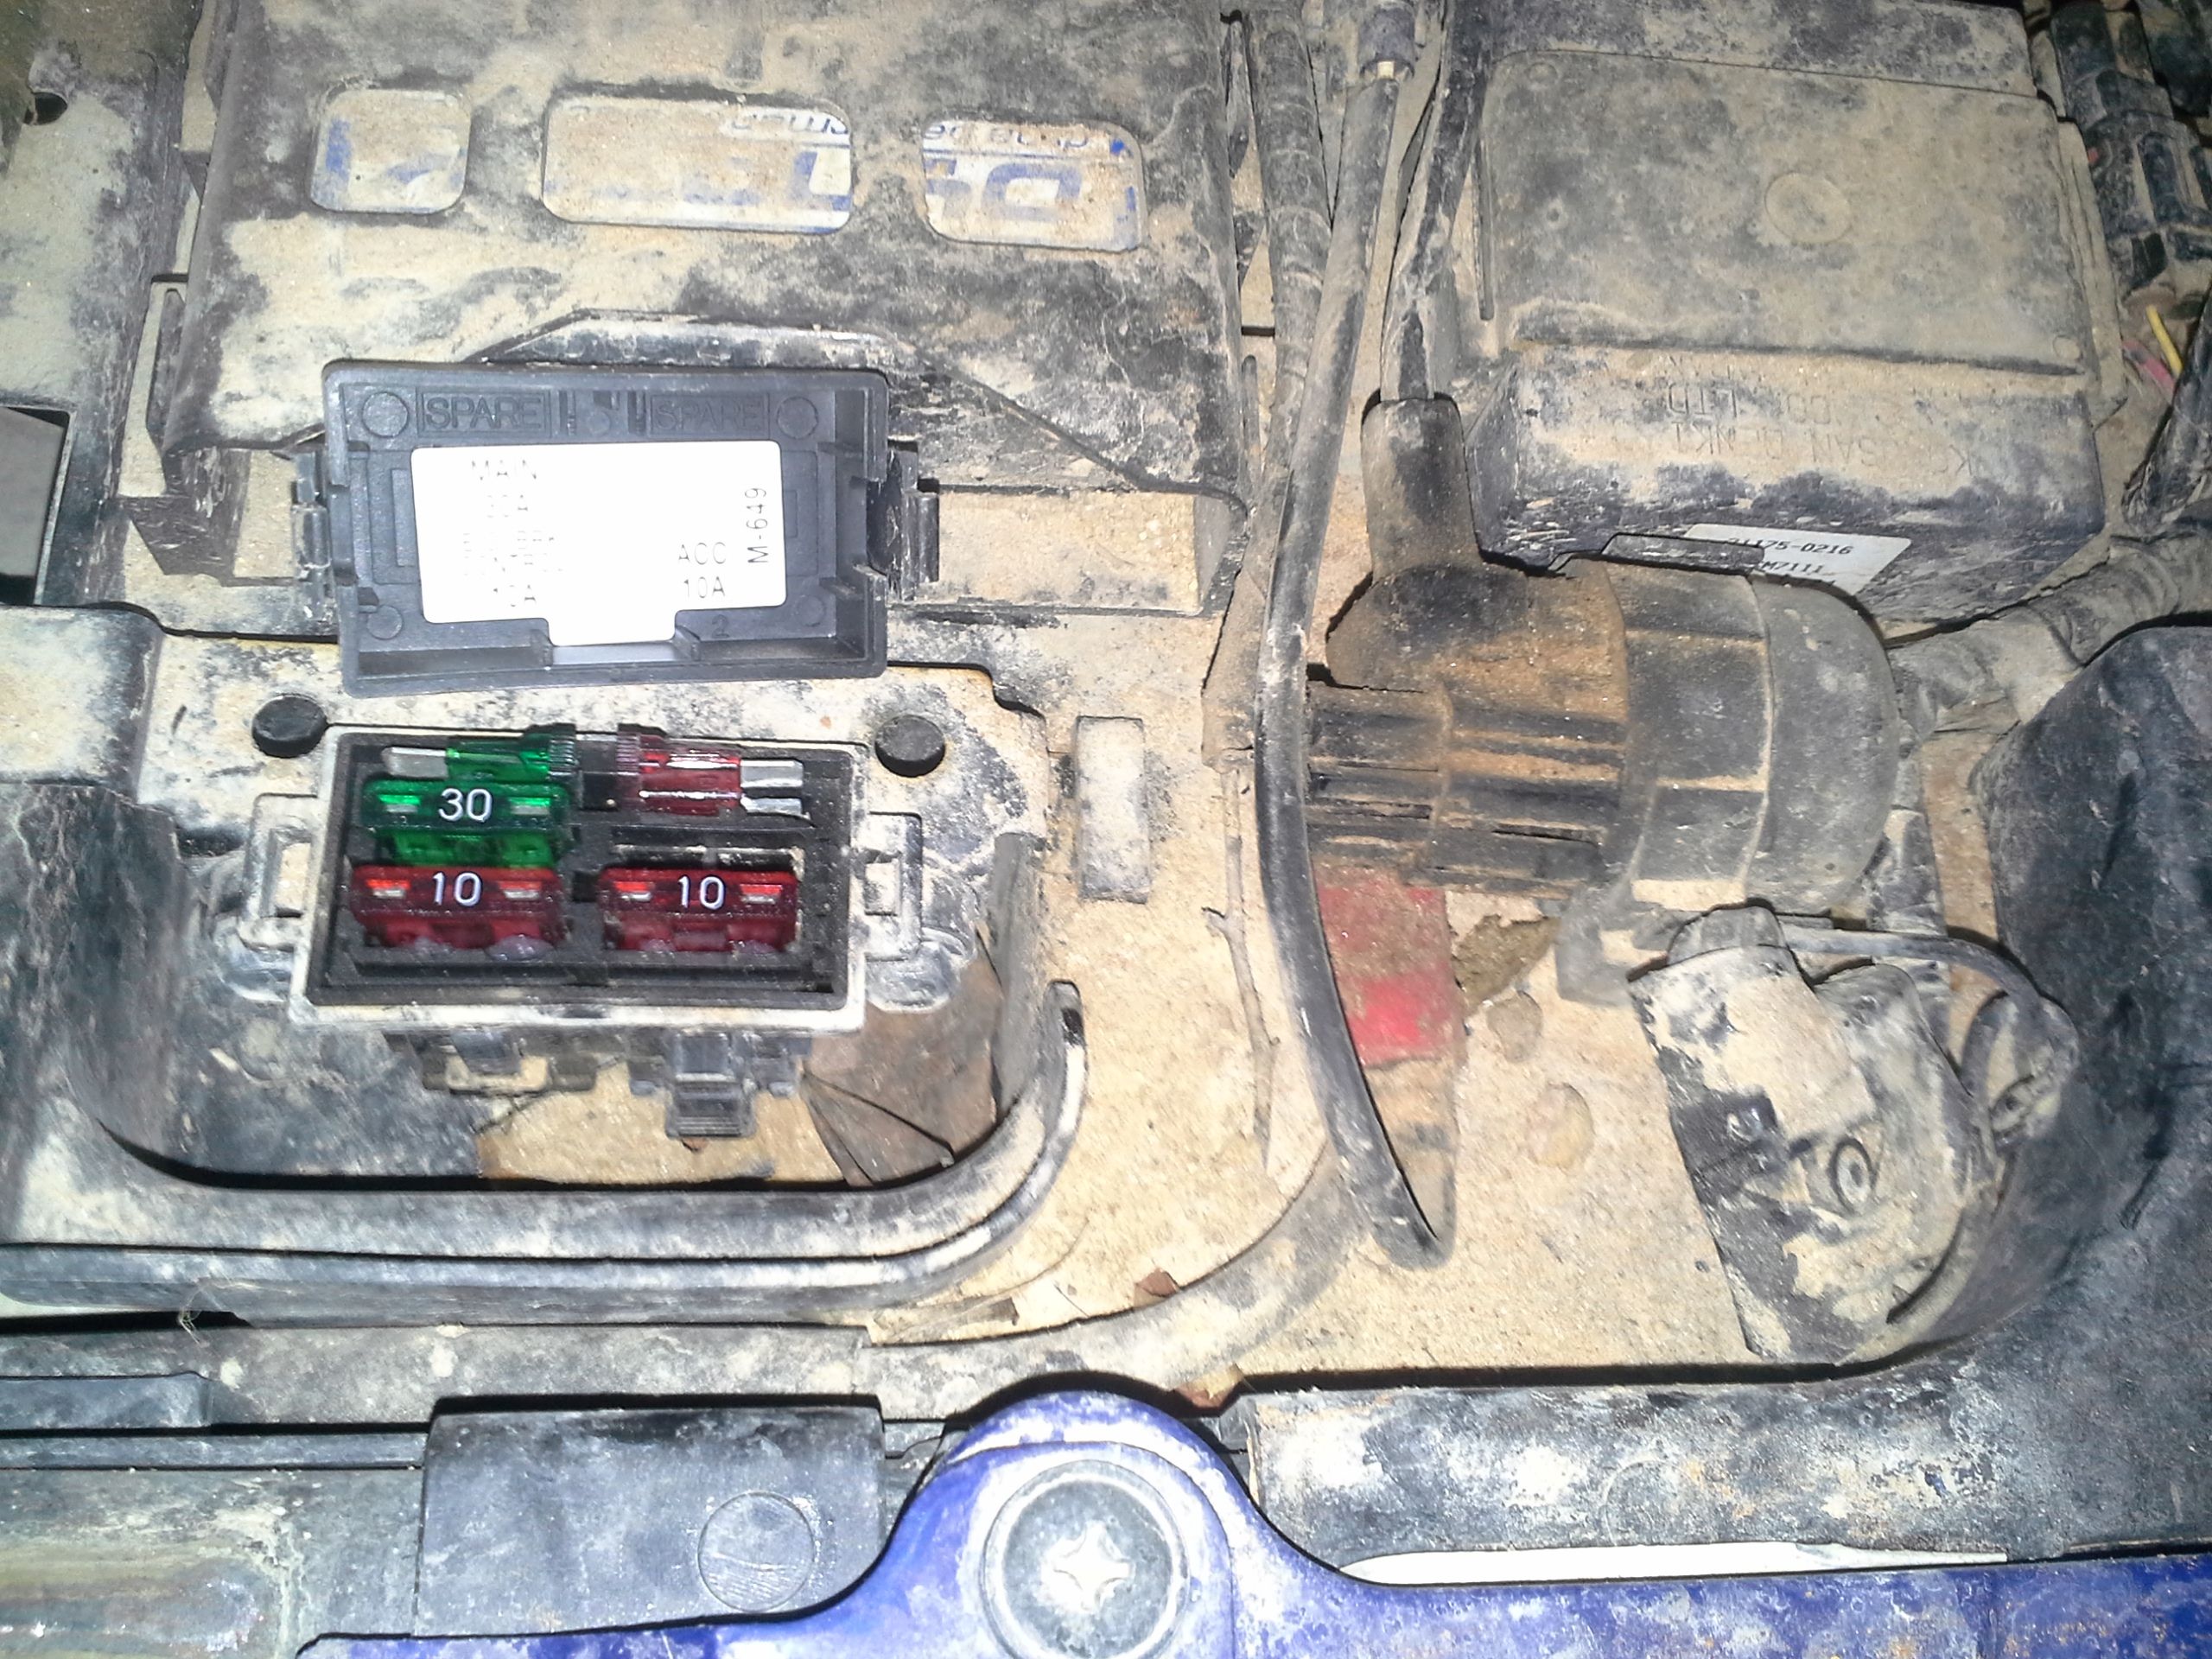 [DIAGRAM_4PO]  2012 650i fuse box wiring | Mud in My Blood Forum | Kawasaki Brute Force 650 Fuse Box |  | Mud in My Blood Forum